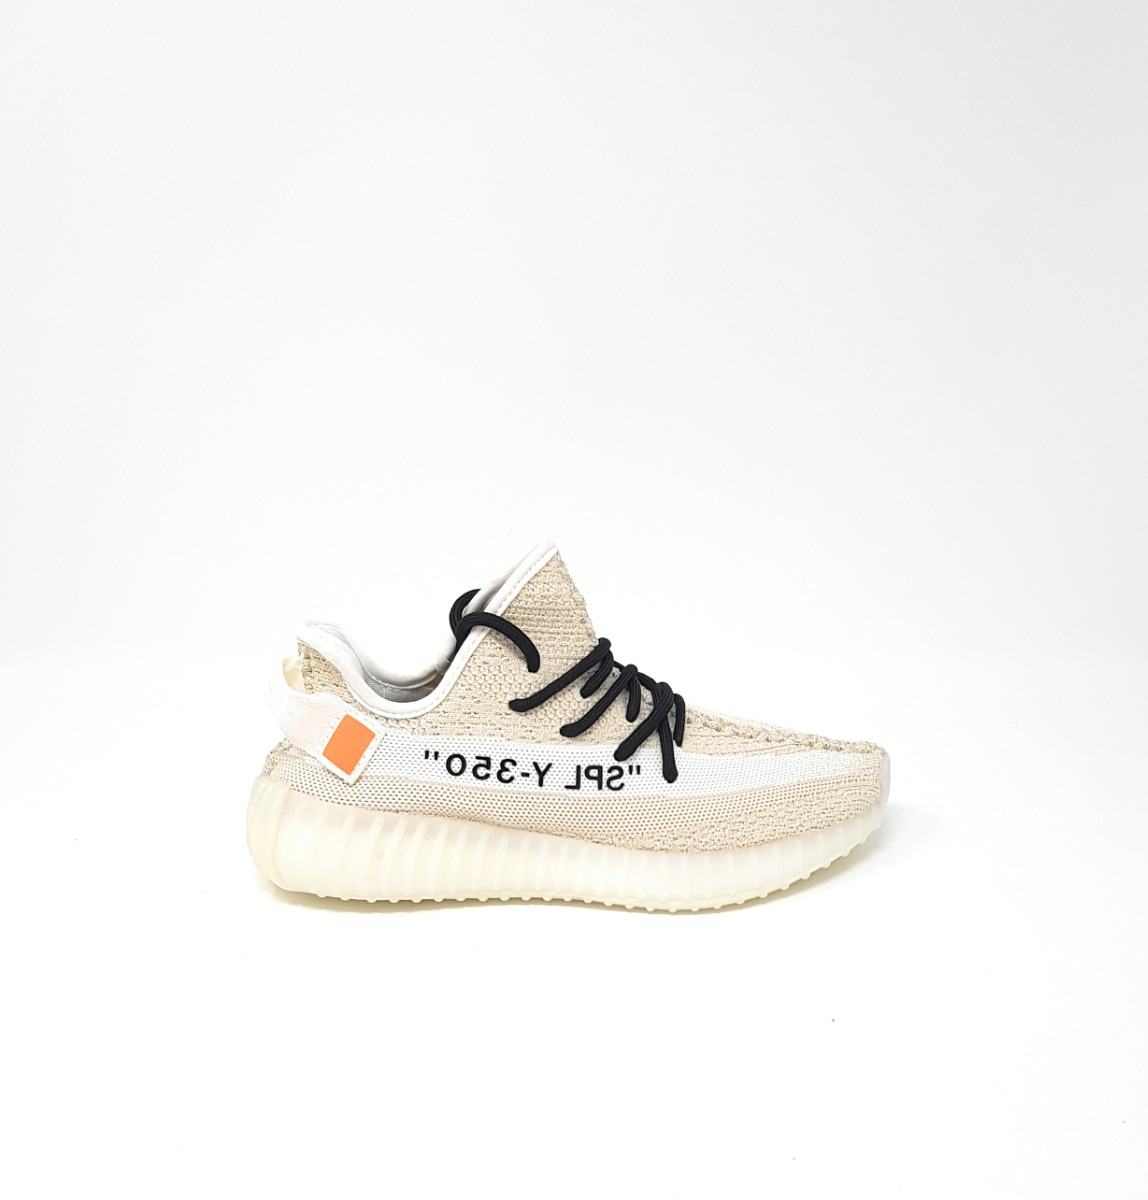 2141f9ca5ec ... discount code for adidas yeezy boost 350 v2 off white hombre cyber  days. cargando zoom